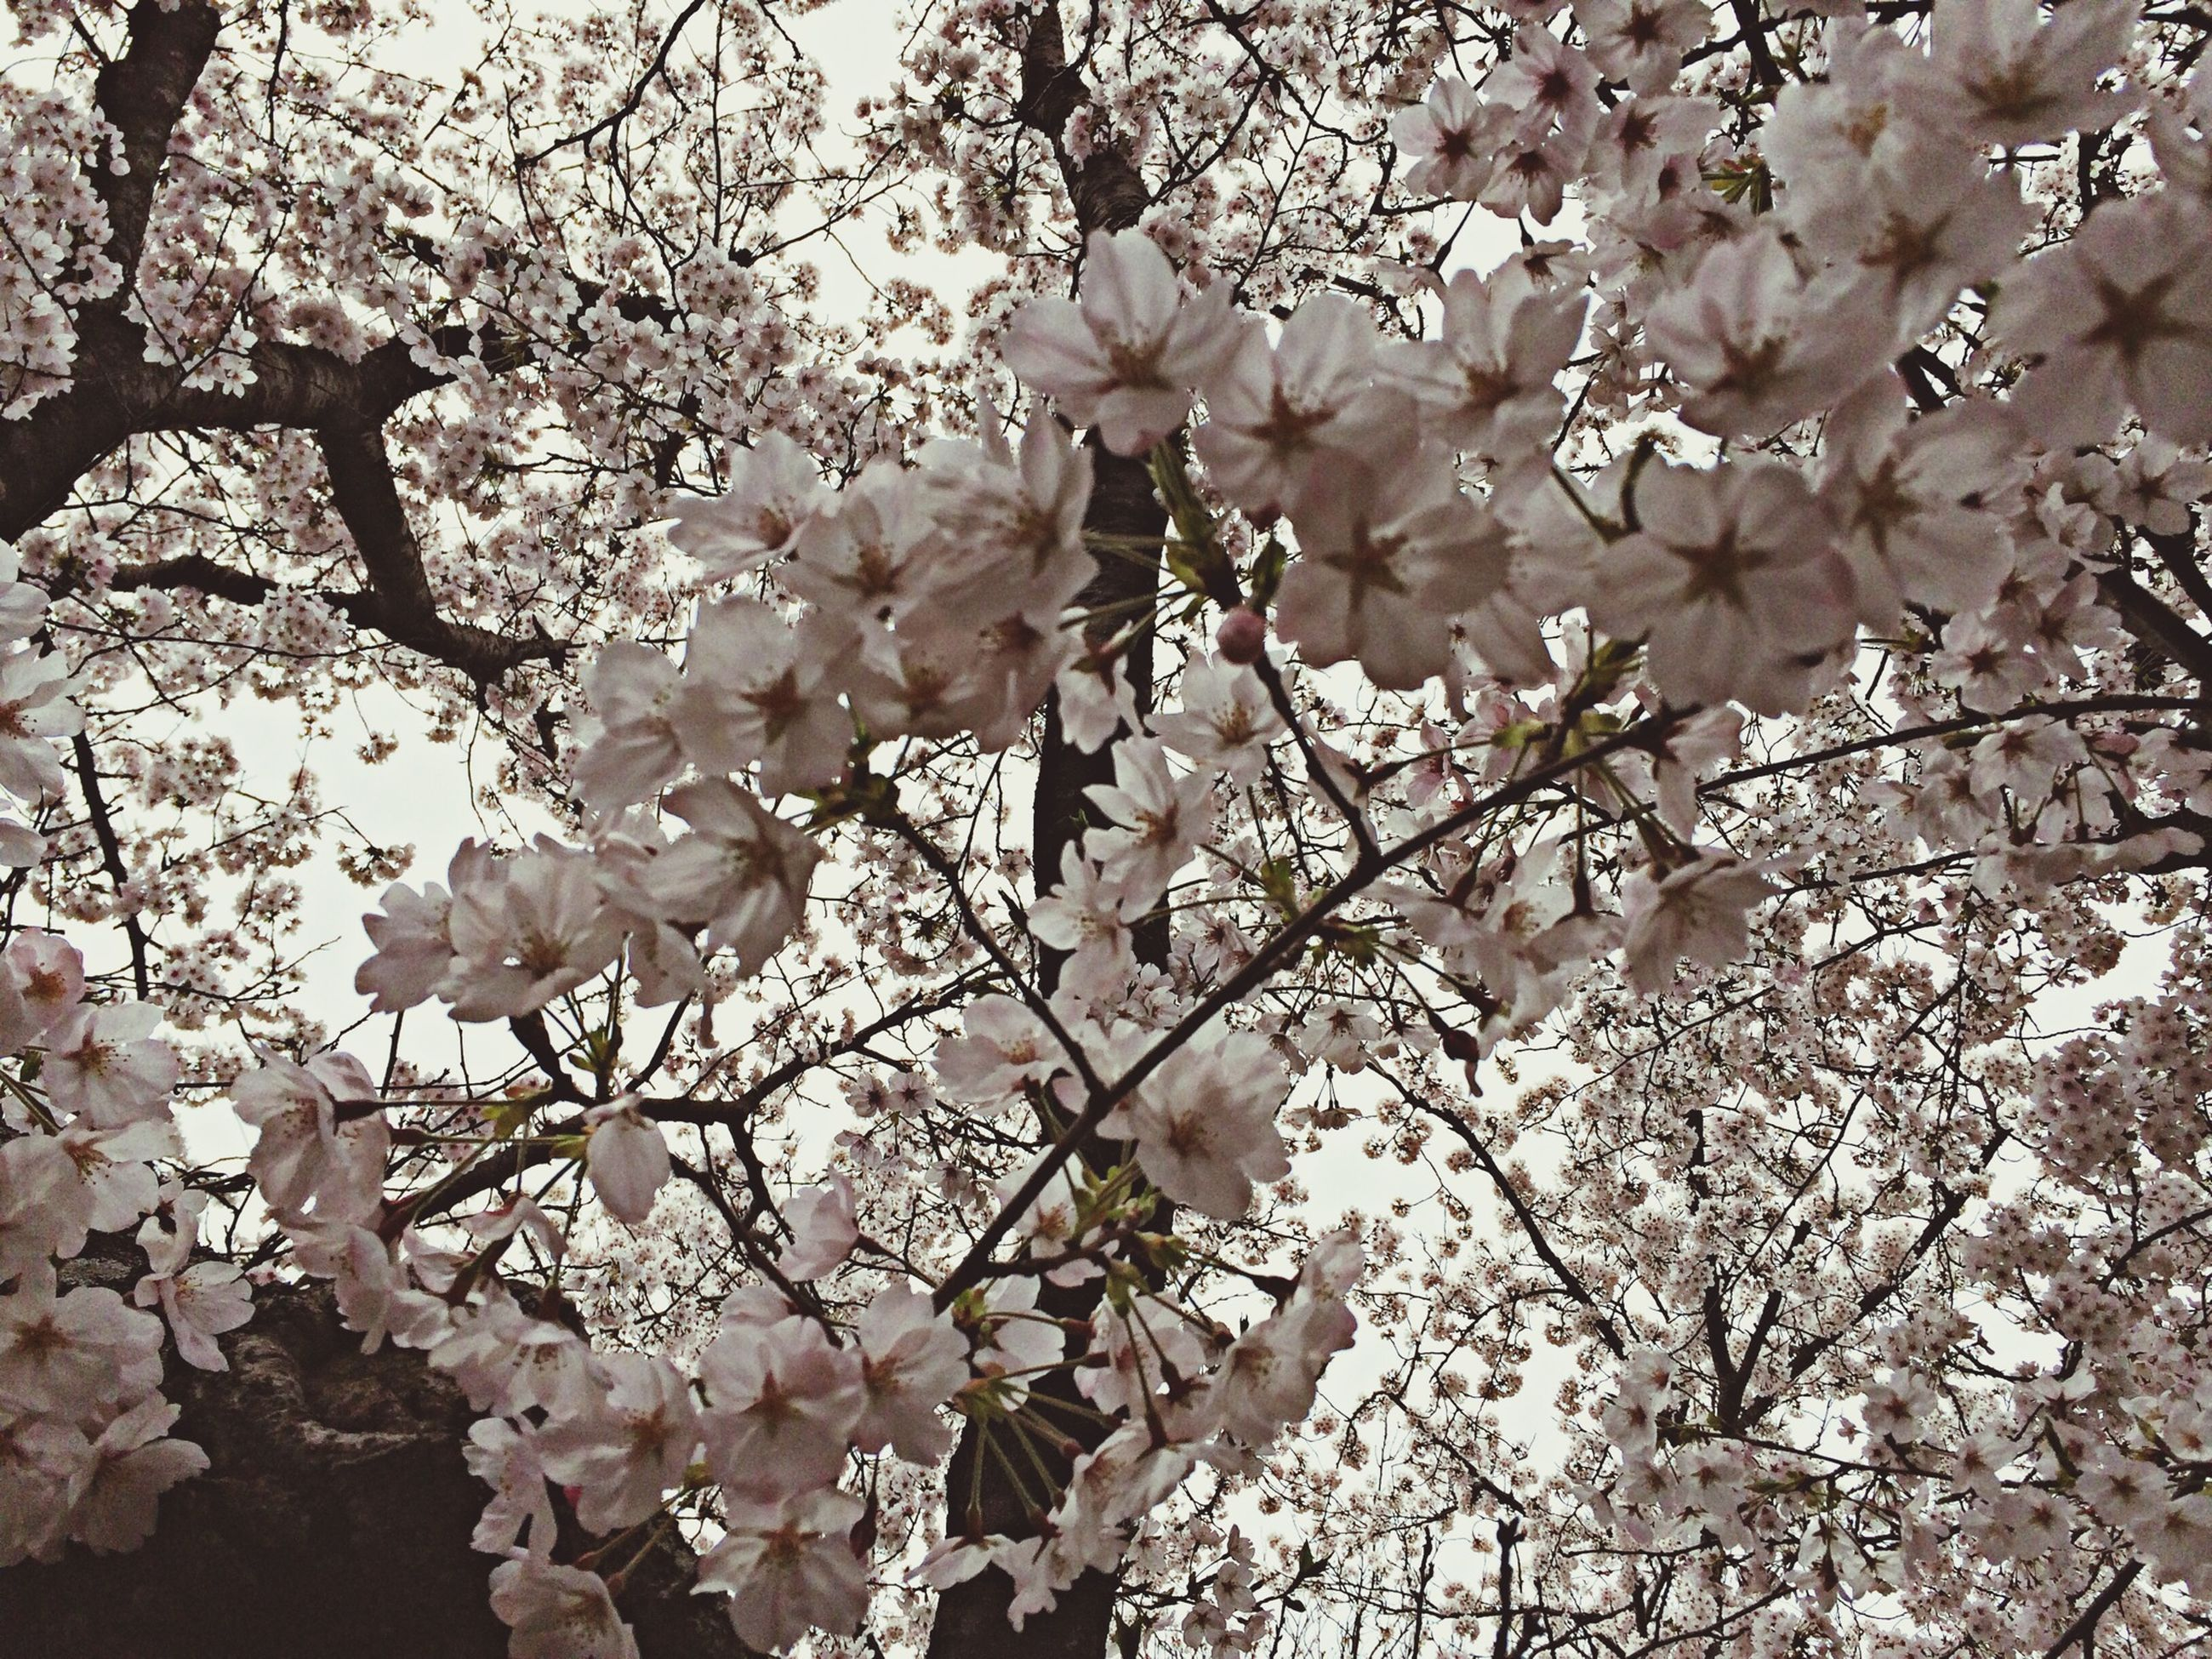 flower, branch, tree, freshness, growth, fragility, cherry blossom, blossom, beauty in nature, low angle view, nature, cherry tree, petal, white color, in bloom, springtime, blooming, fruit tree, twig, botany